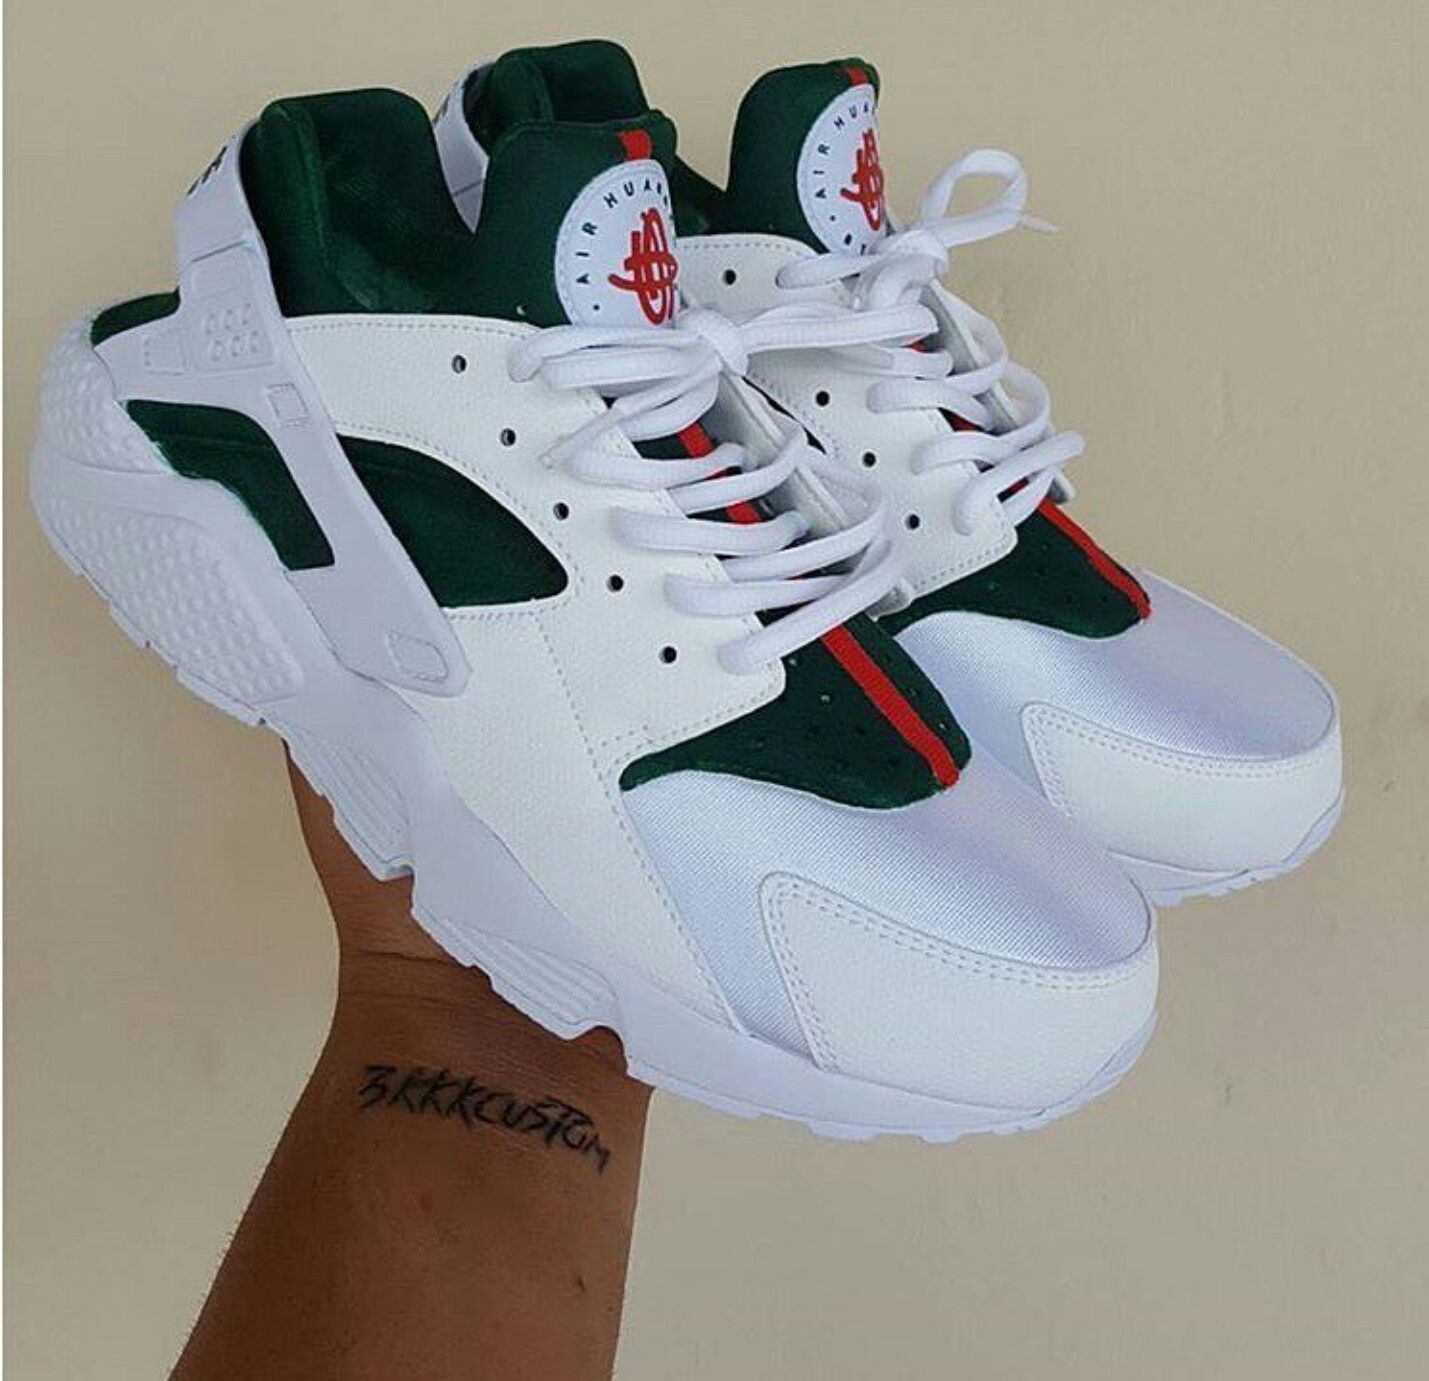 cheap for discount 17fc2 43990 gucci huaraches 🐍 Women s Huarache Shoes, Nike Air Huarache, Gucci  Huraches, Hirachi Nike